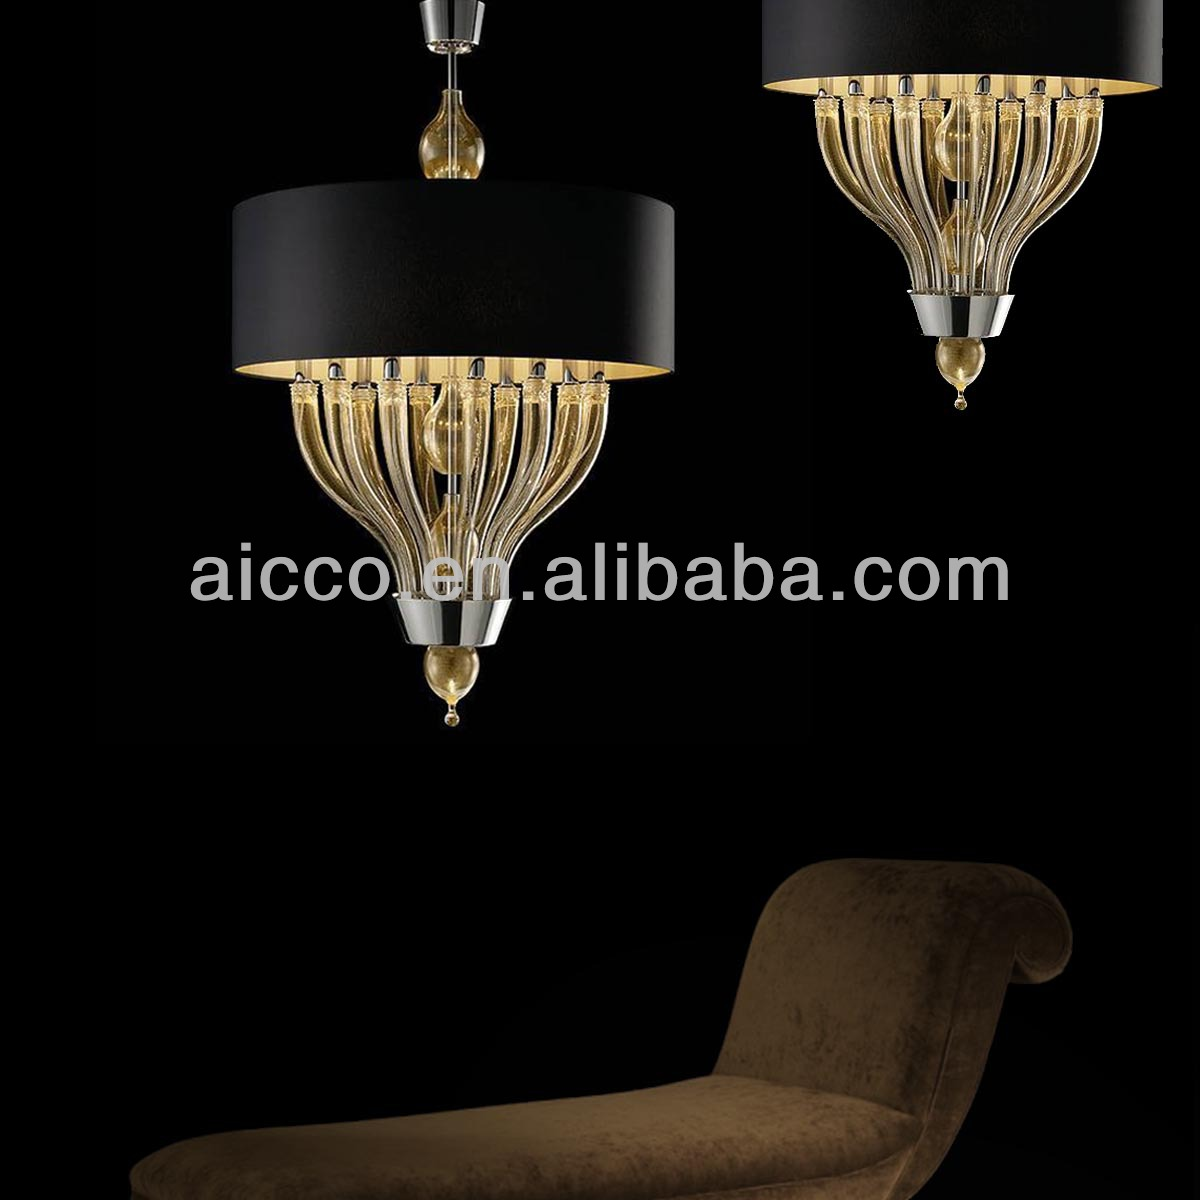 Modern Italian Murano Glass Pendant Chandelier Lighting